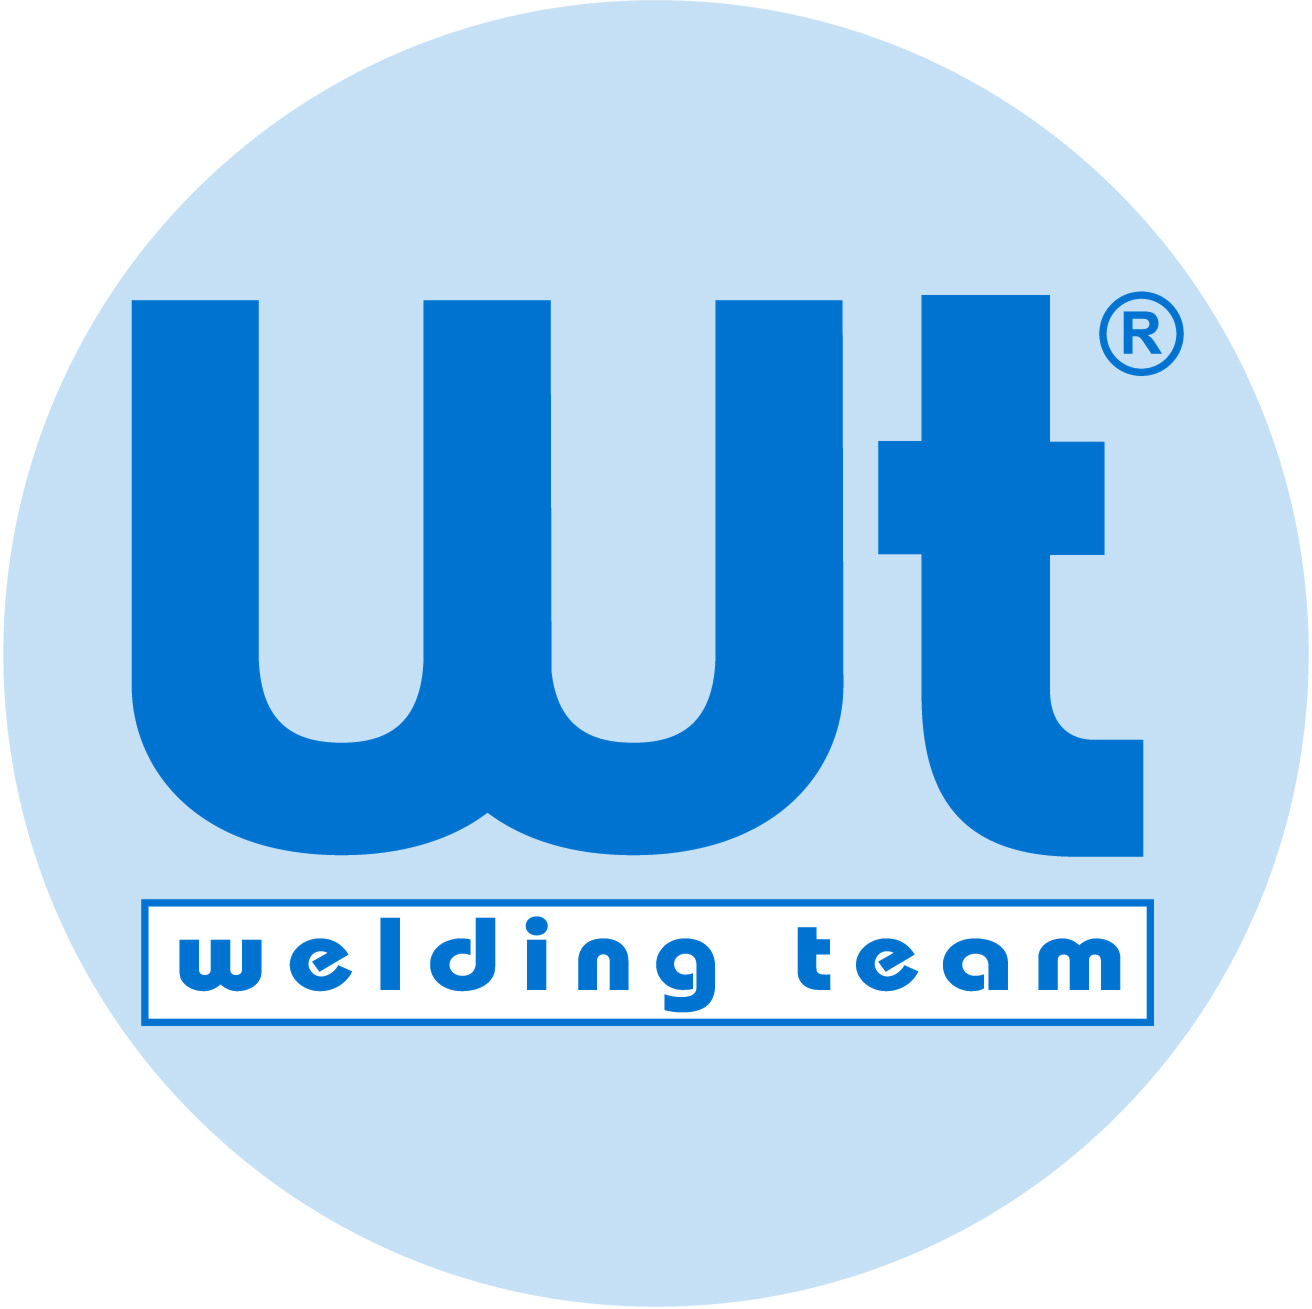 Welding Team TW